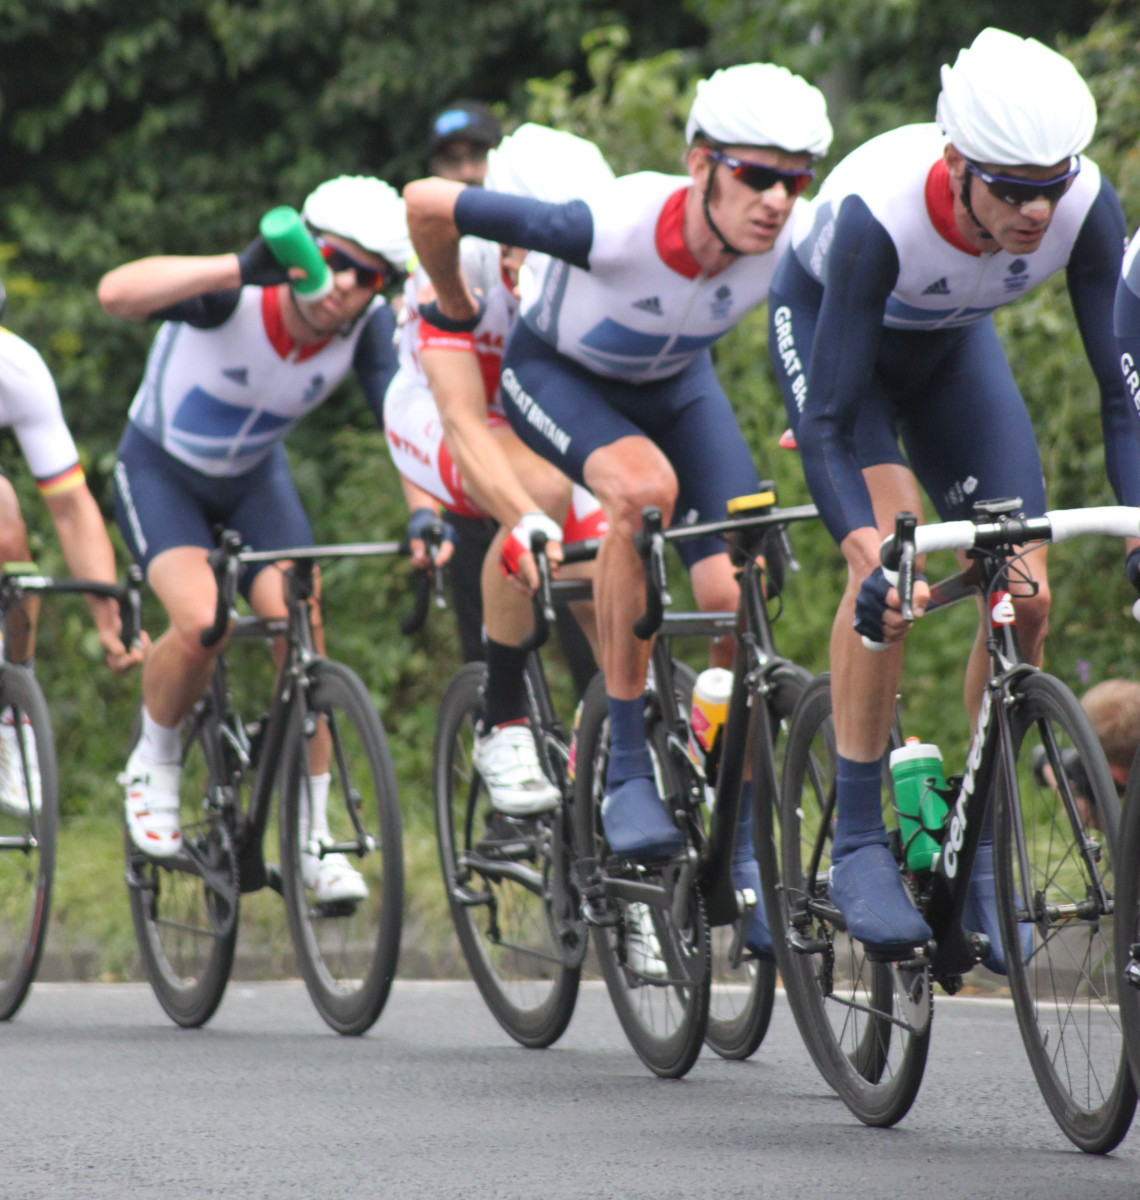 How To Sprint Like Mark Cavendish On Your Bicycle